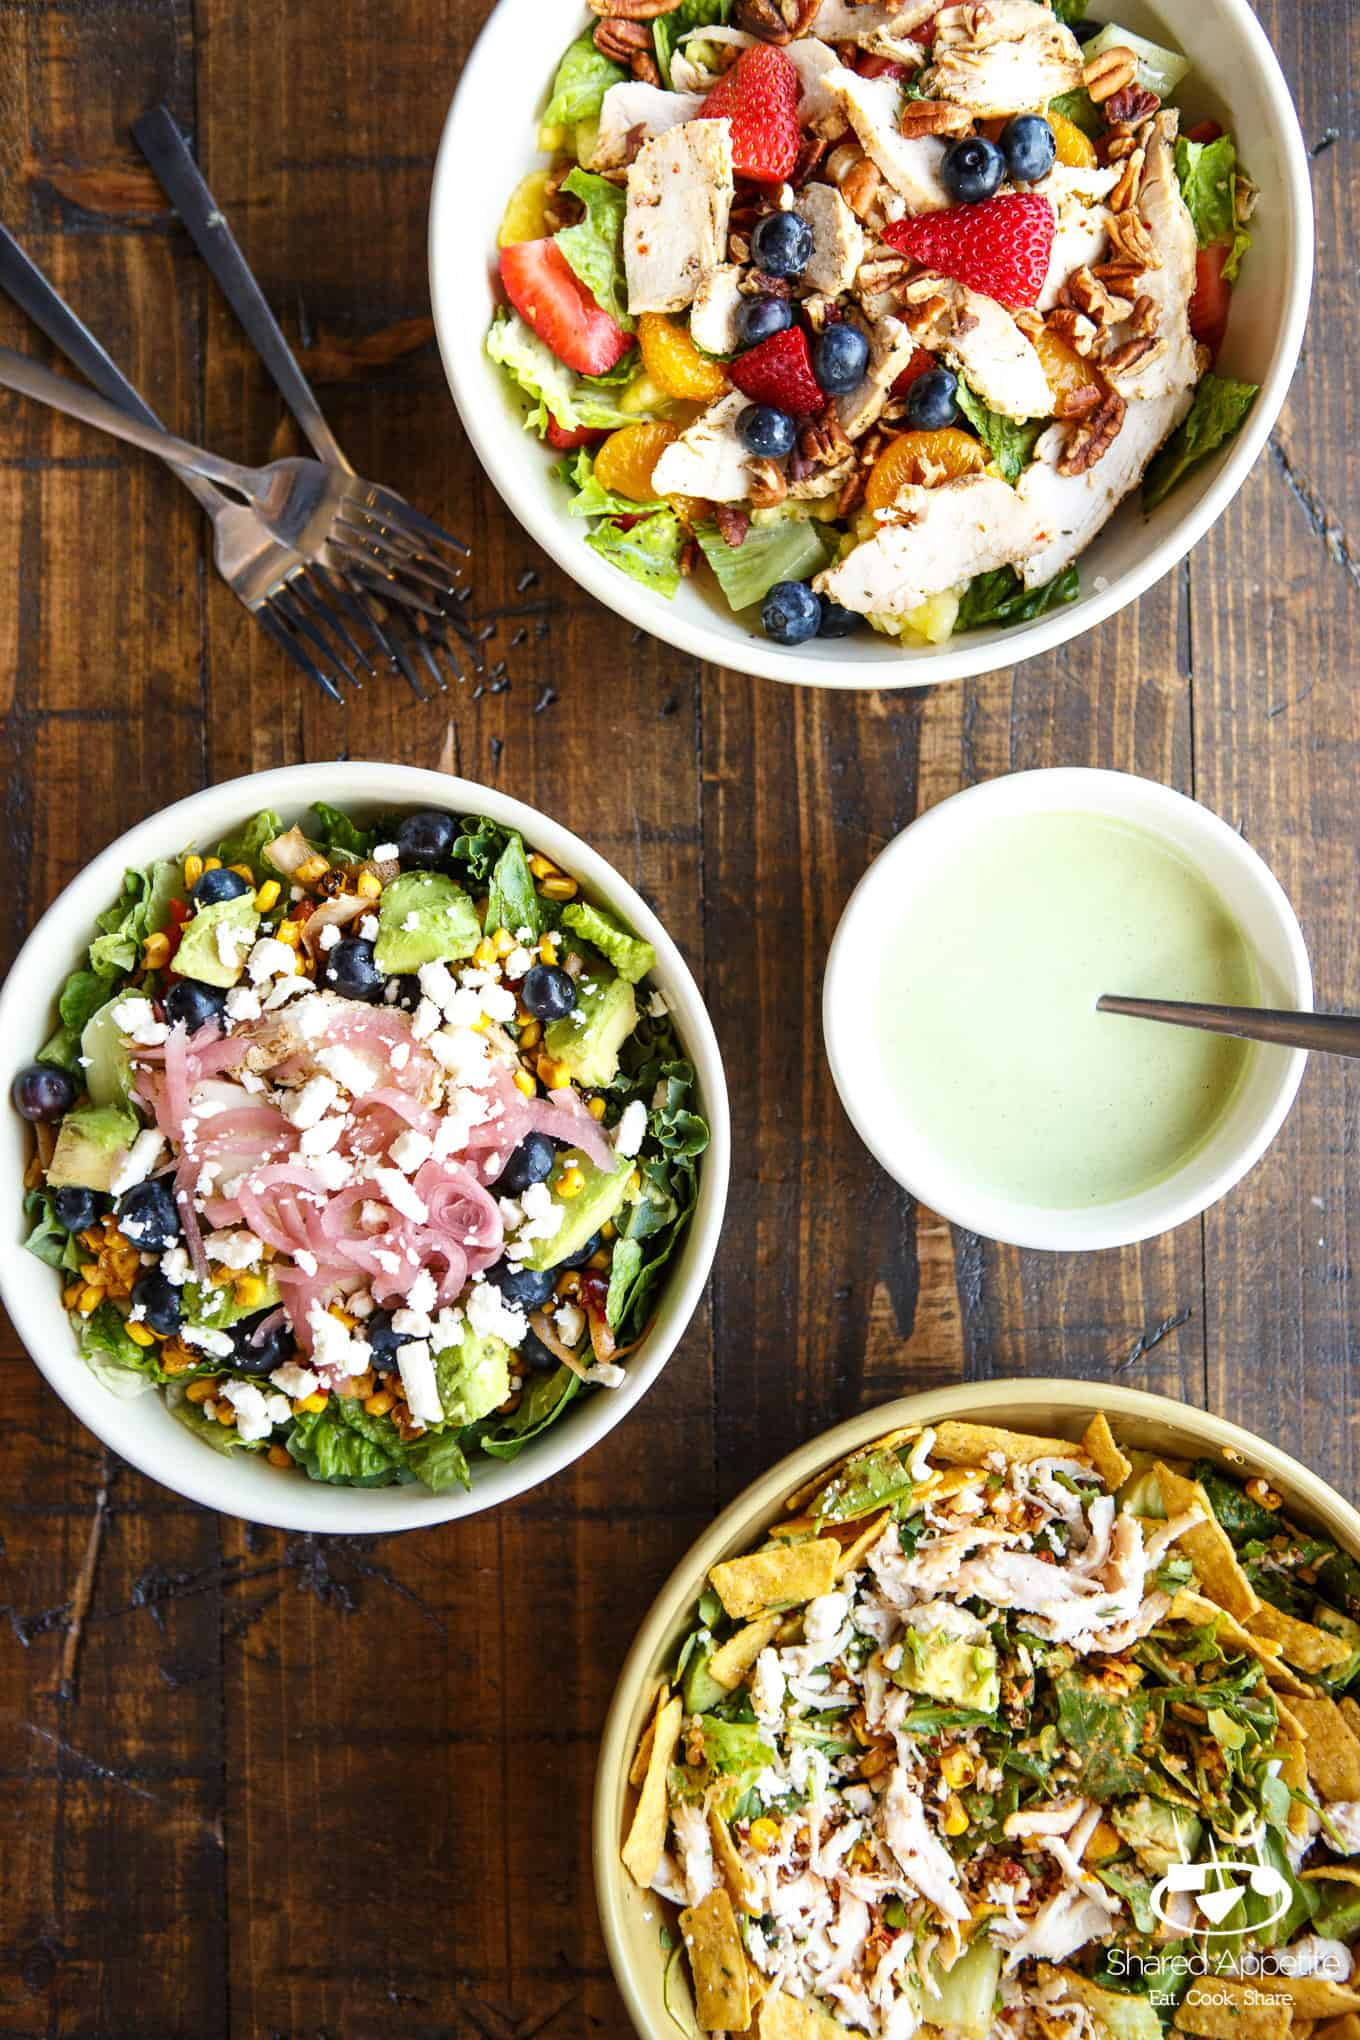 Create Your Own Salad At Panera